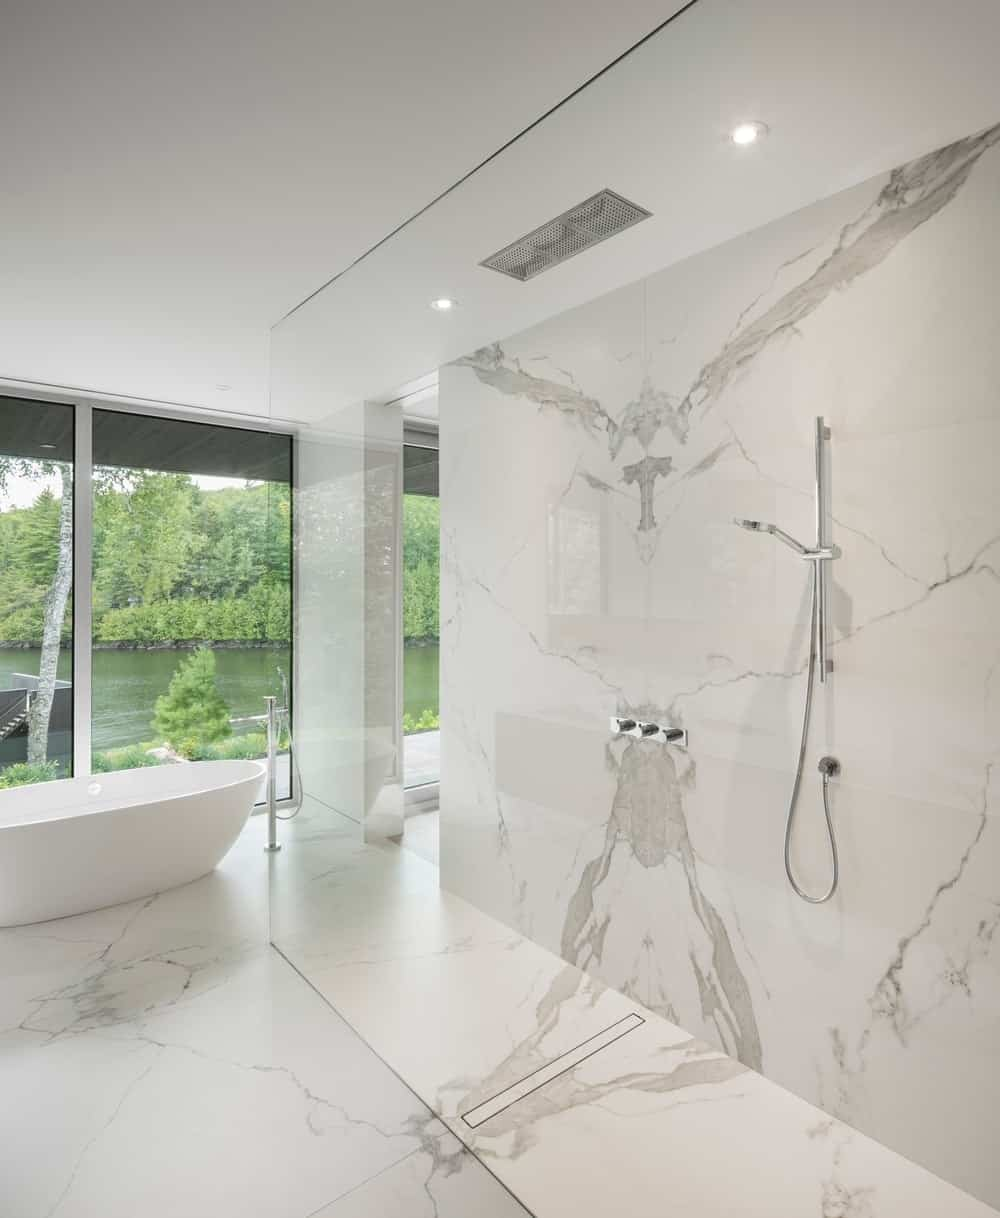 Primary bathroom boasts an open shower and freestanding tub along with white contemporary walls and glass windows. Photo Credit: Stephane Groleau